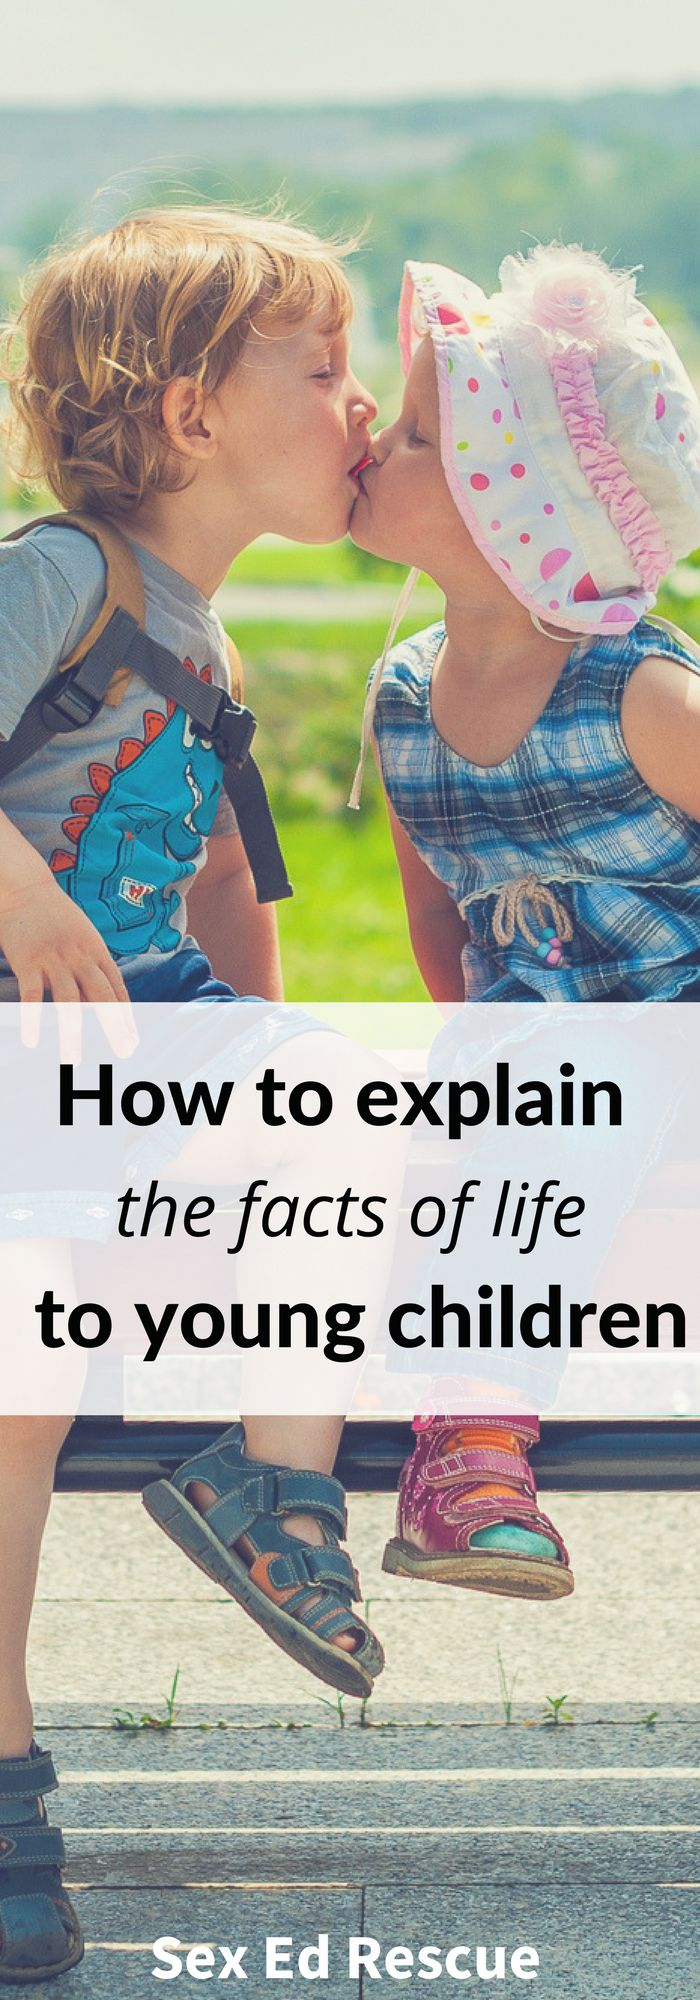 As a parent, most of us know that at some stage, that we'll need to start explaining the facts of life to our kids. But when do you start and what do you say?